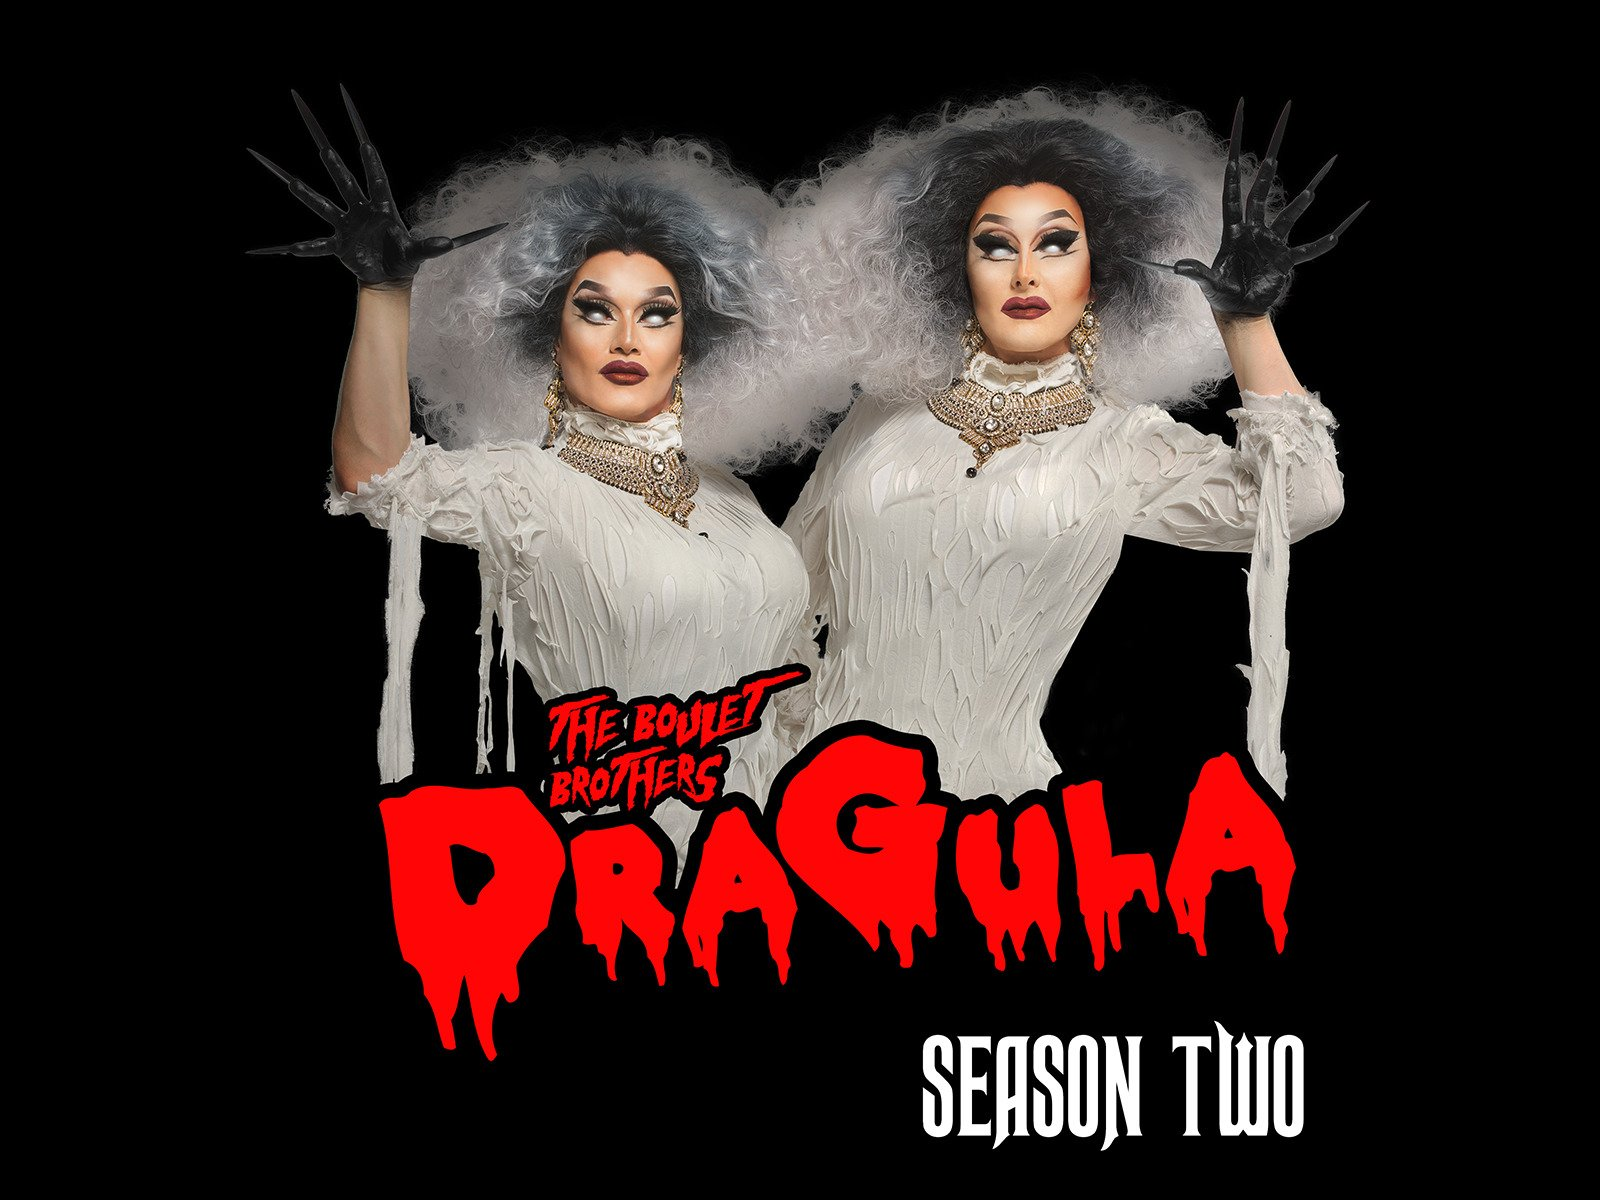 The Boulet Brothers' Dragula - Season 2